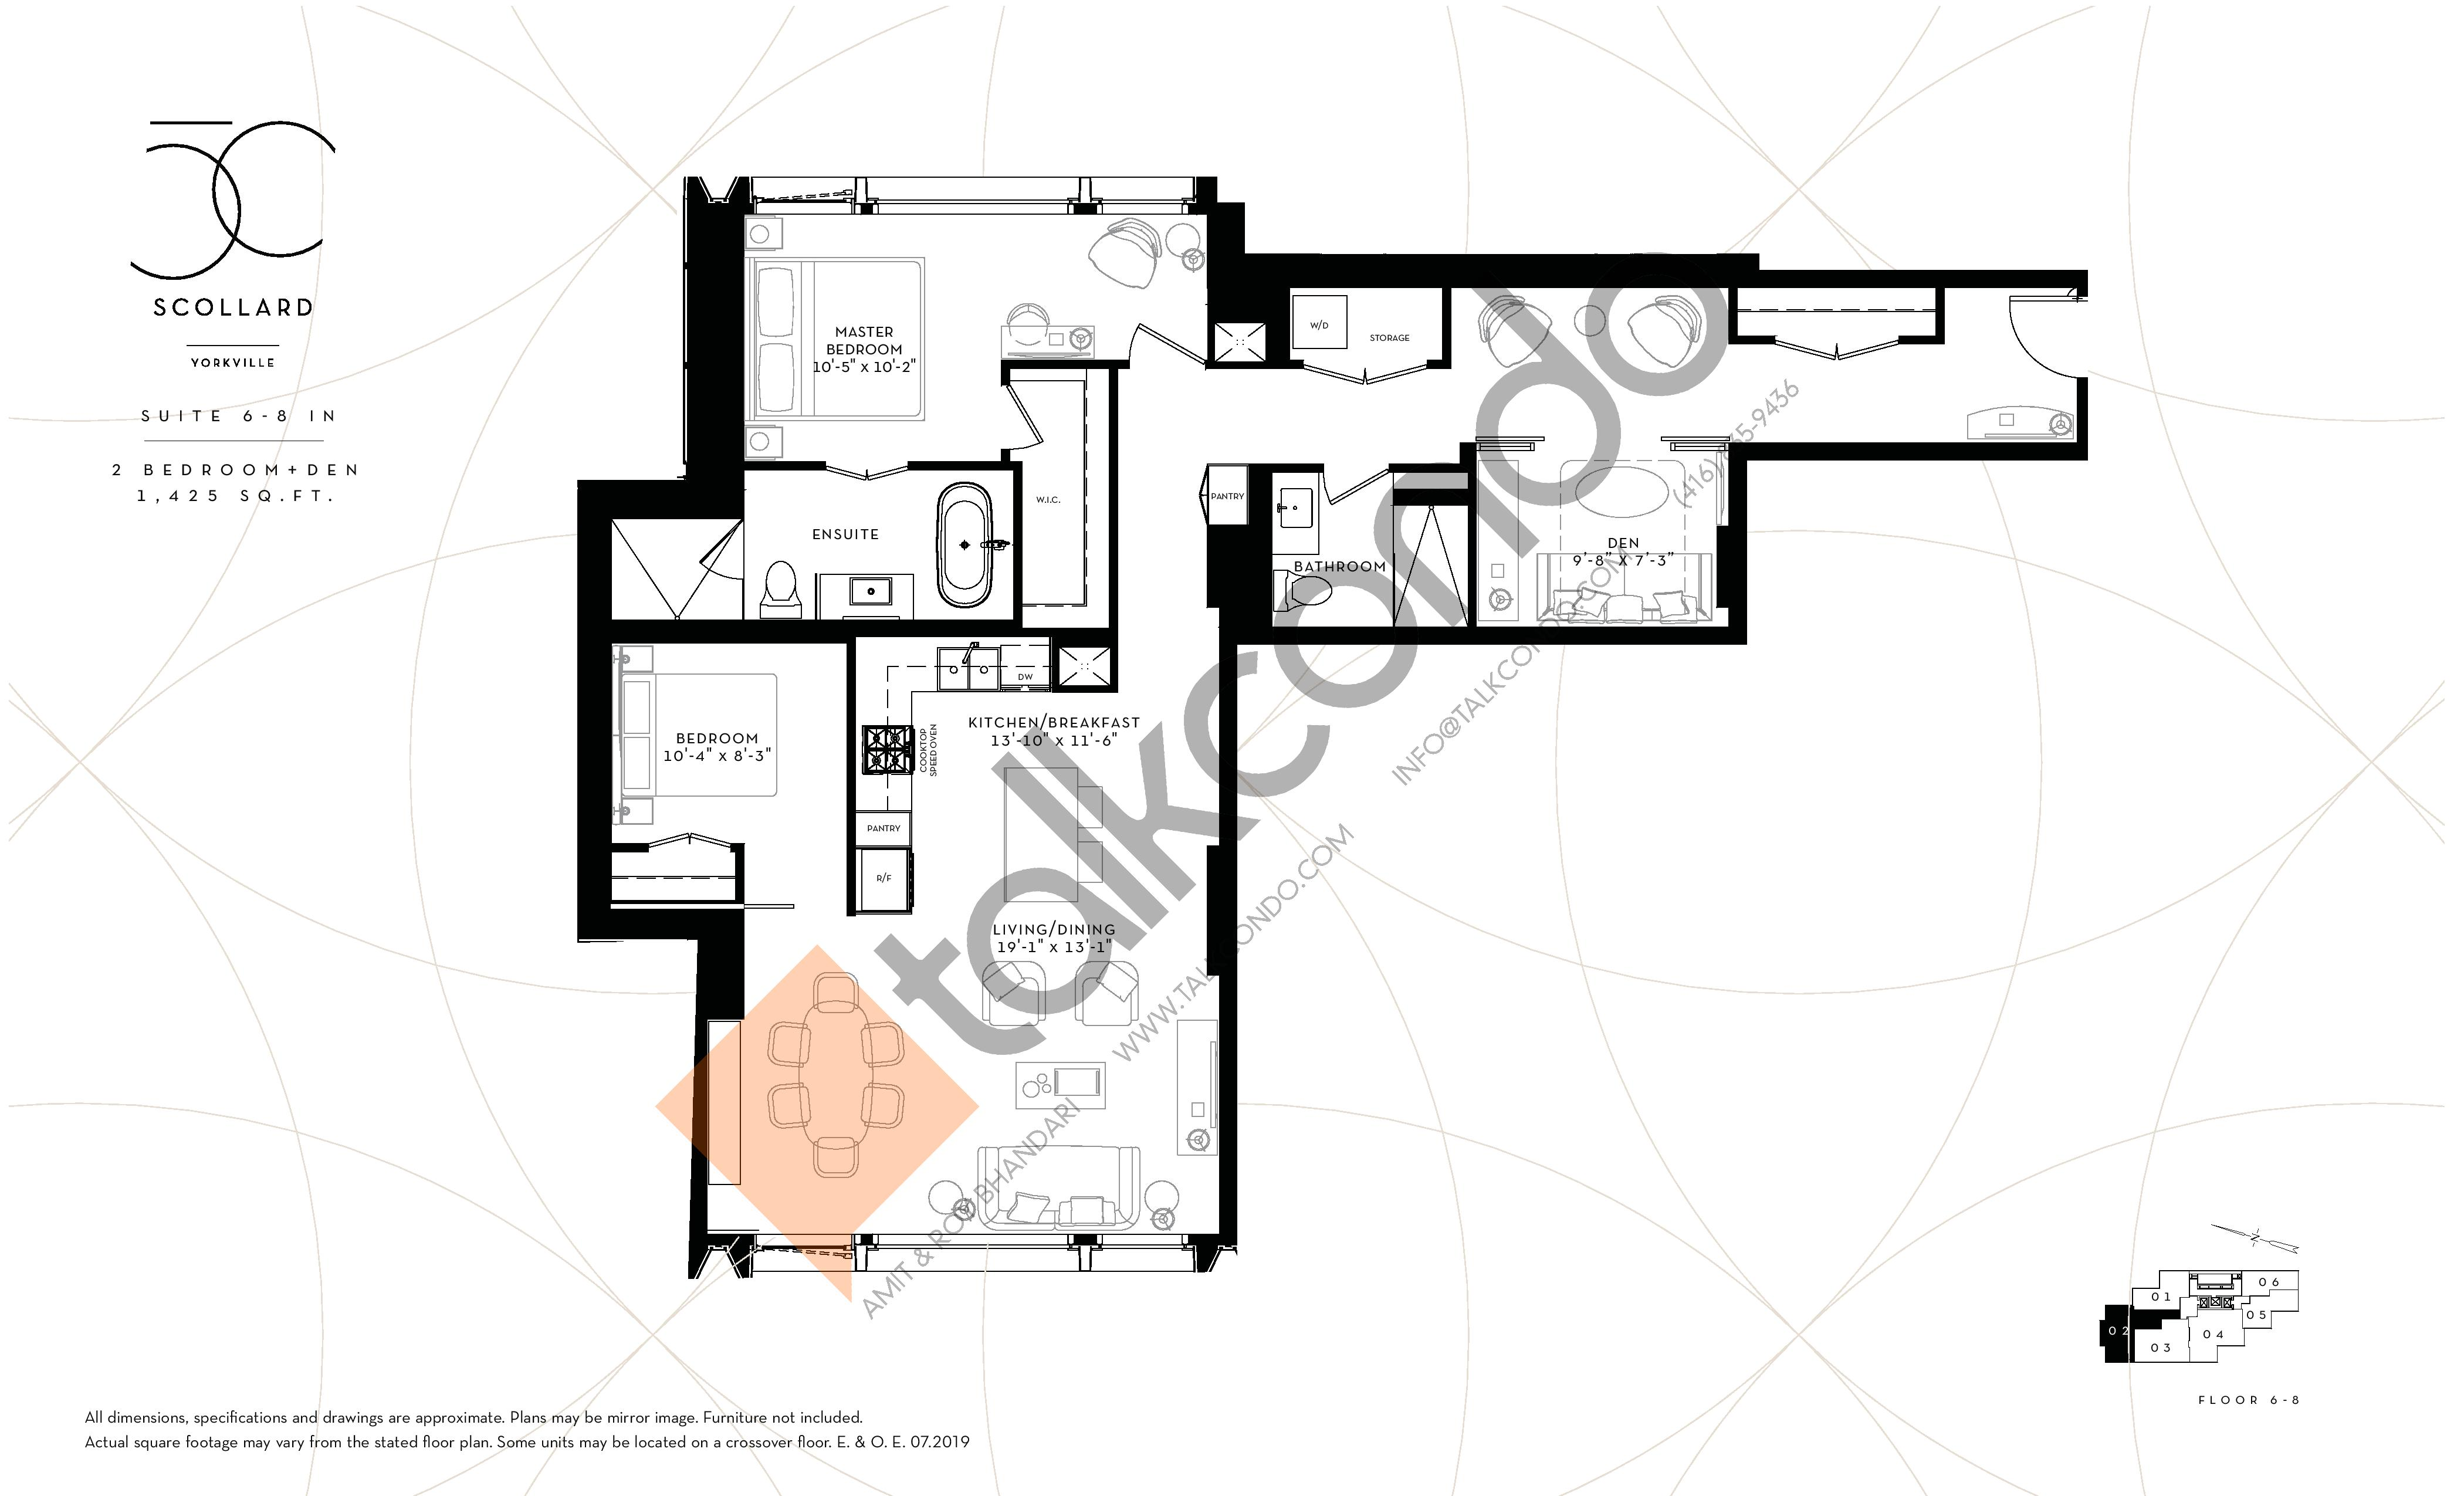 Suite 6-8 IN Floor Plan at Fifty Scollard Condos - 1425 sq.ft